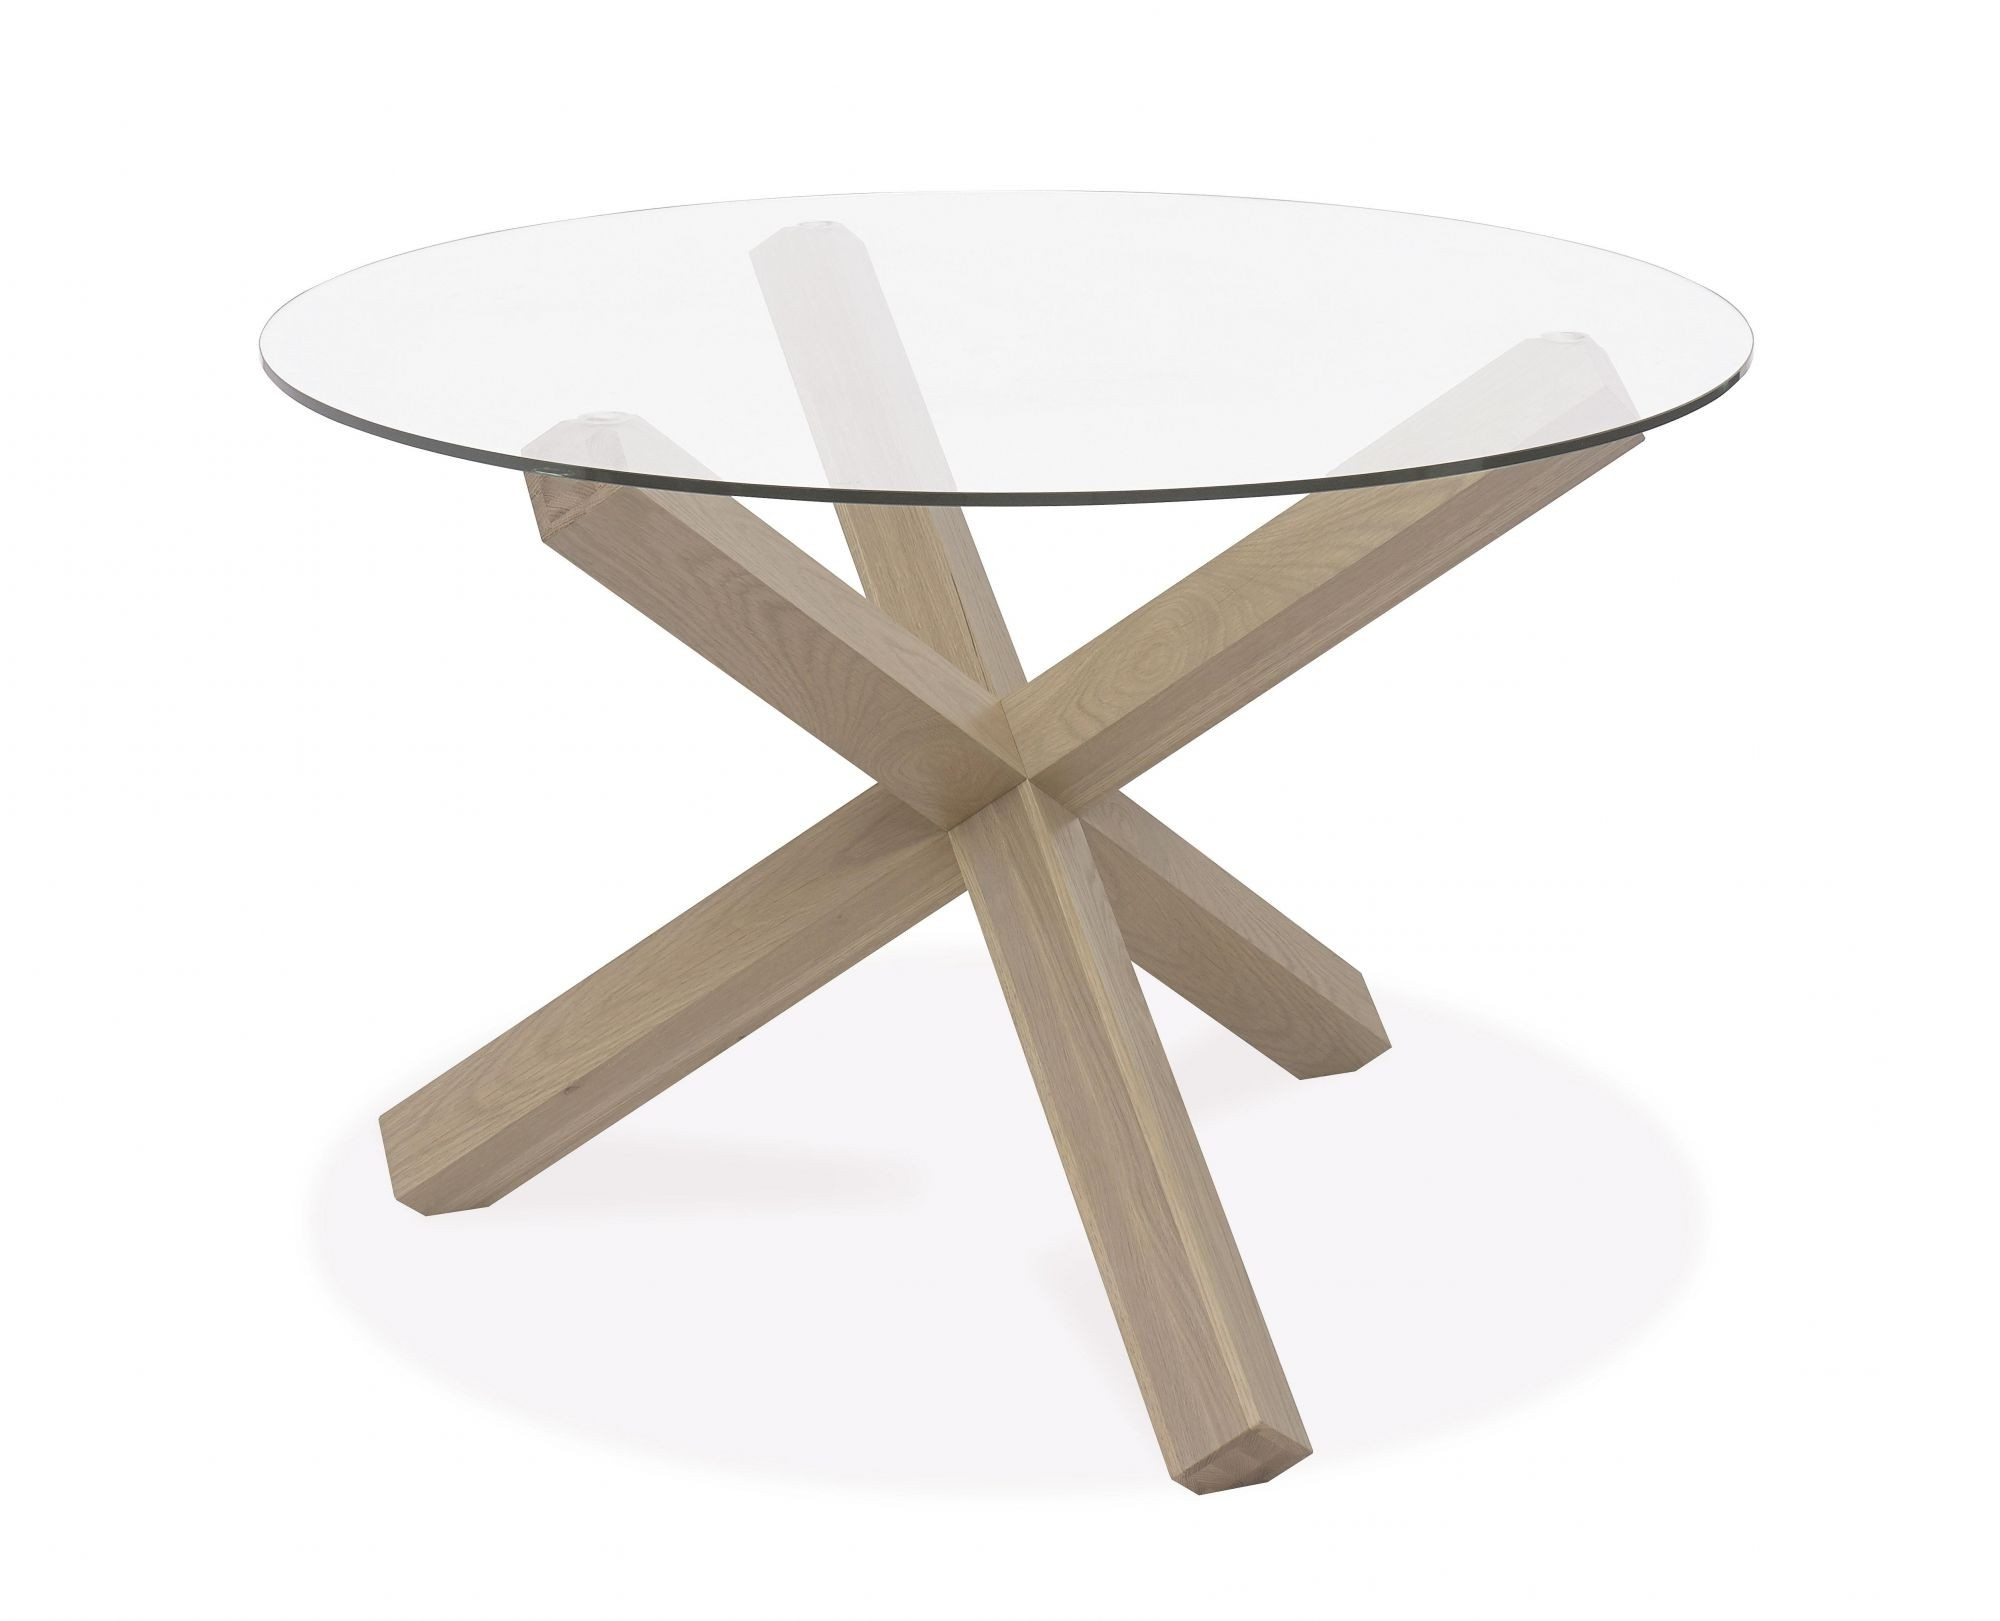 Circular Oak Dining Tables Inside Trendy Kitchen And Dining Tables, Rectangular And Round Kitchen And Dining (View 11 of 25)